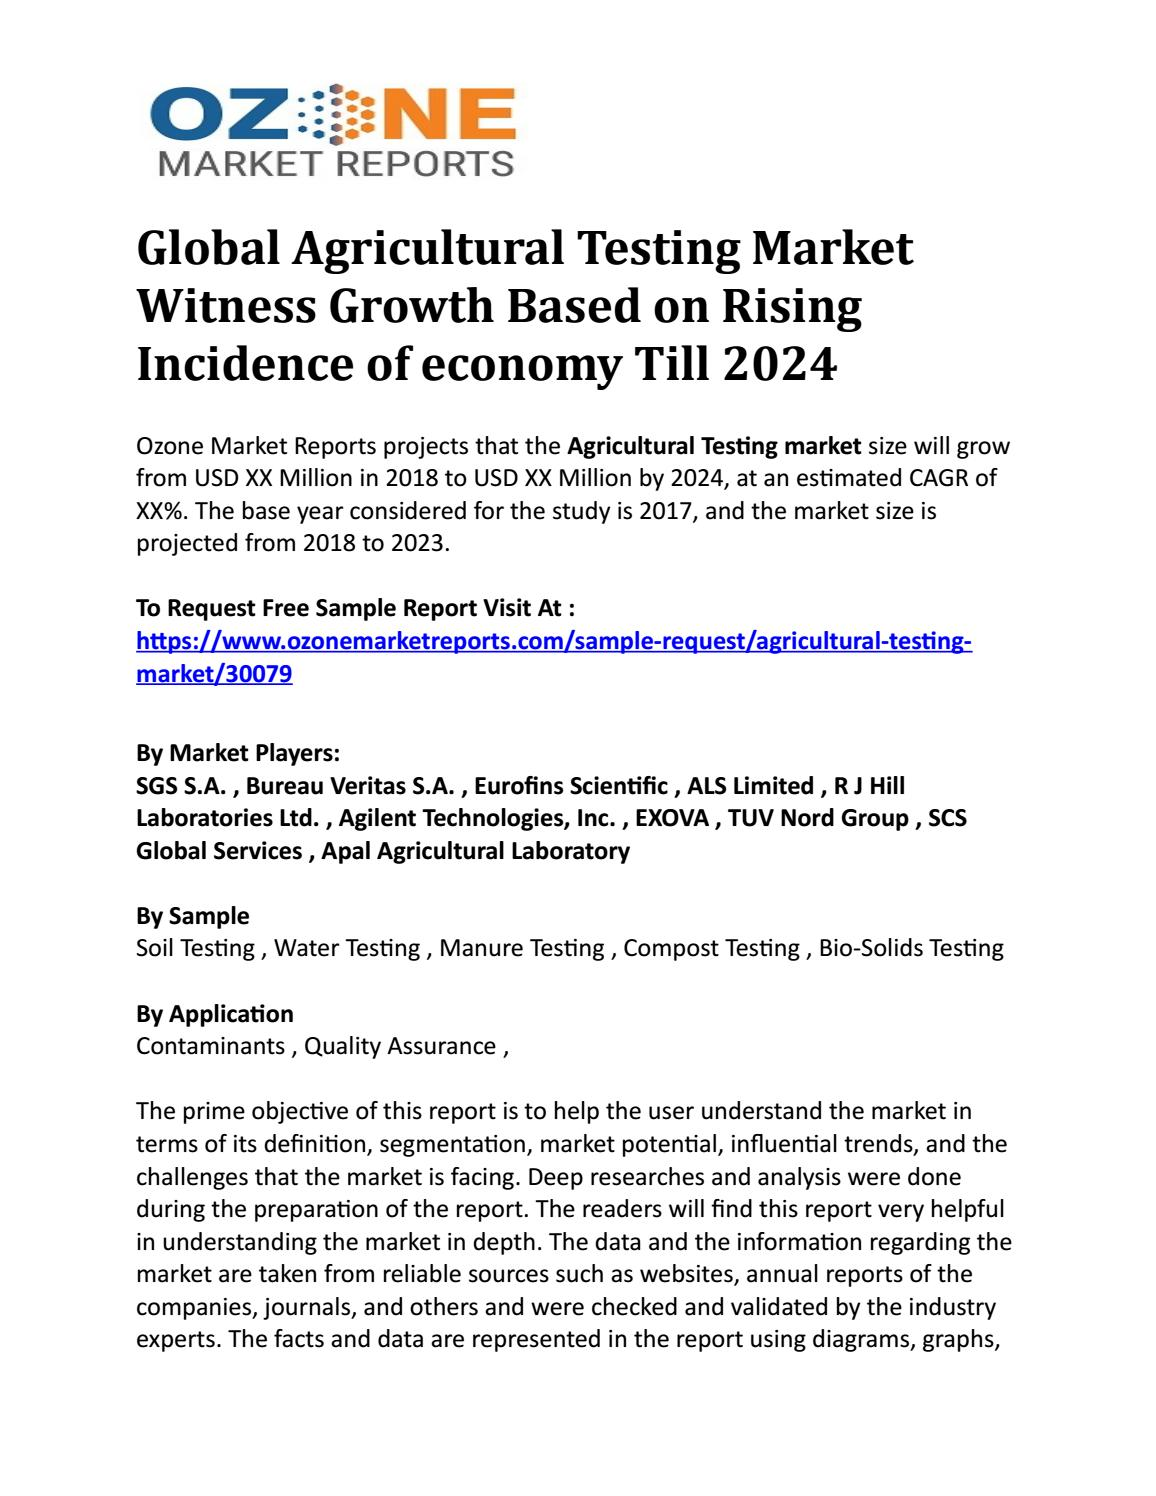 Global Agricultural Testing Market Witness Growth Based on